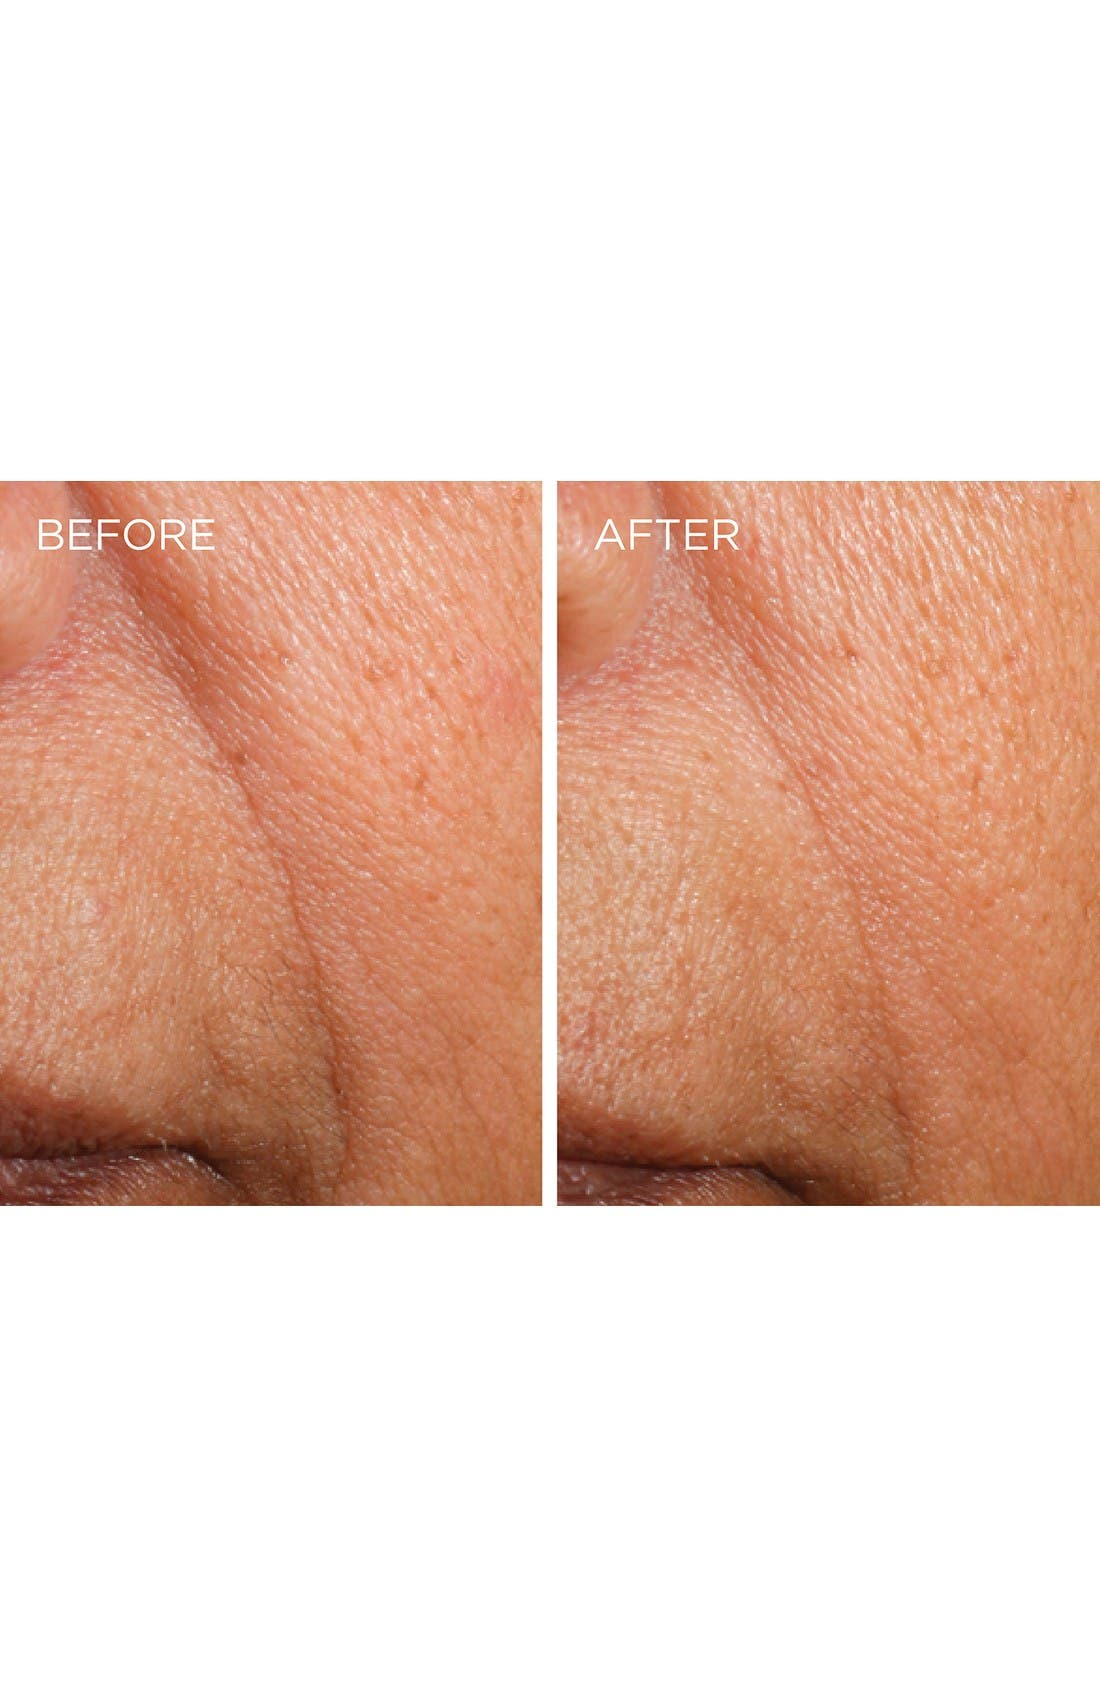 Alternate Image 3  - Dermarché® Labs 'FullFill' Hyaluronic Acid Topical Wrinkle Filler